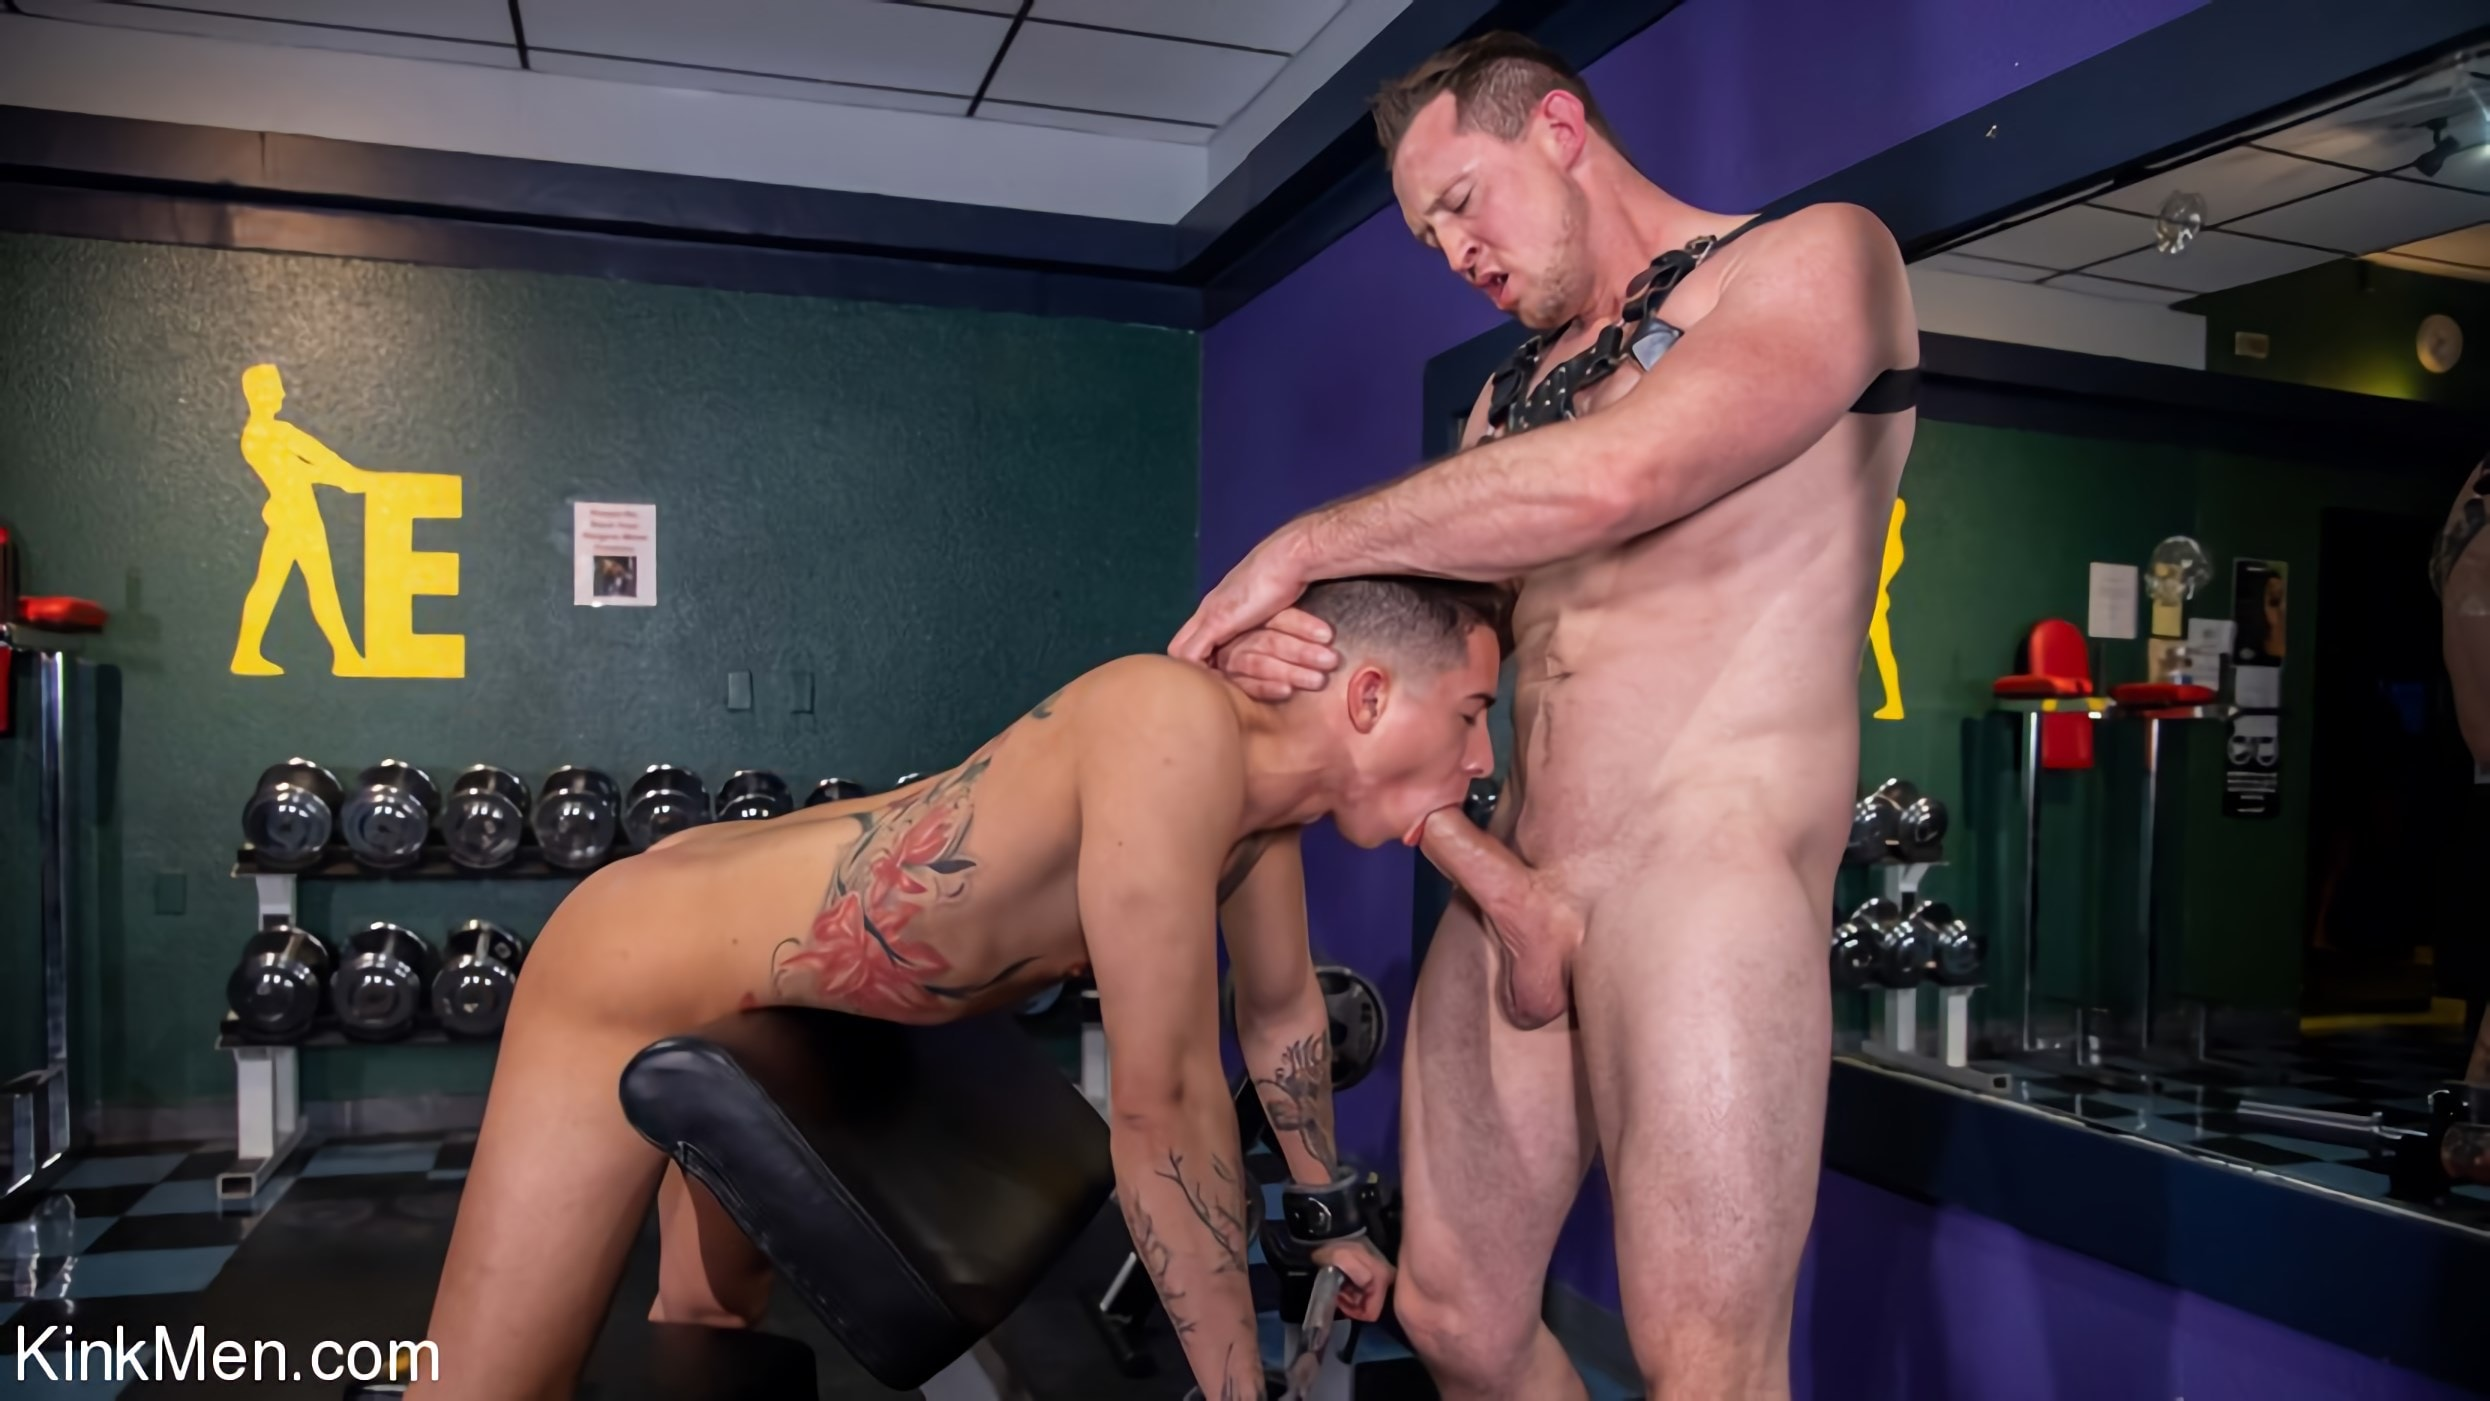 Pierce Paris - No Pain No Gain: Vincent O'Reilly Takes Pierce Paris' Monster Cock | Picture (9)